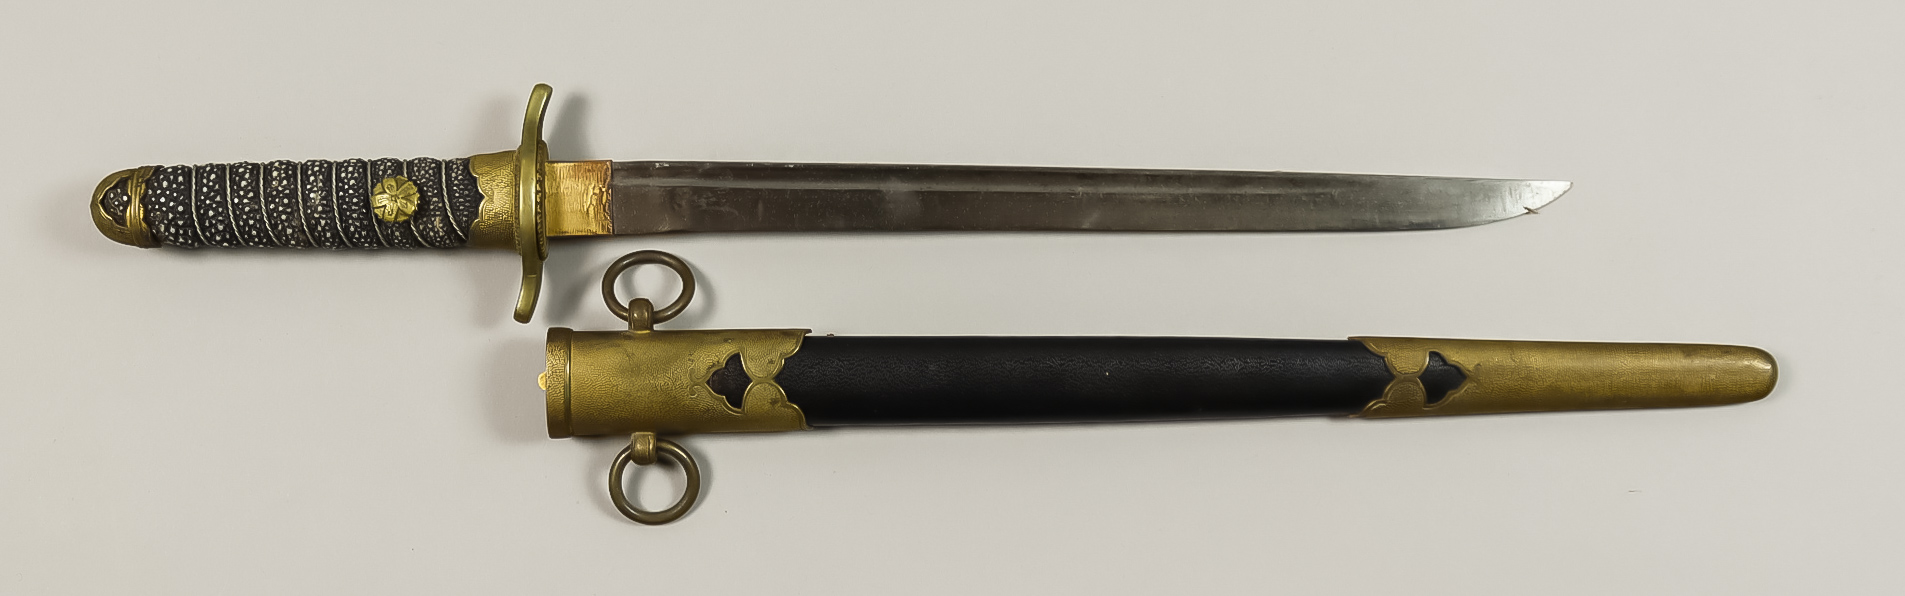 A Japanese Naval Dirk, no visible marks, ray skin grip